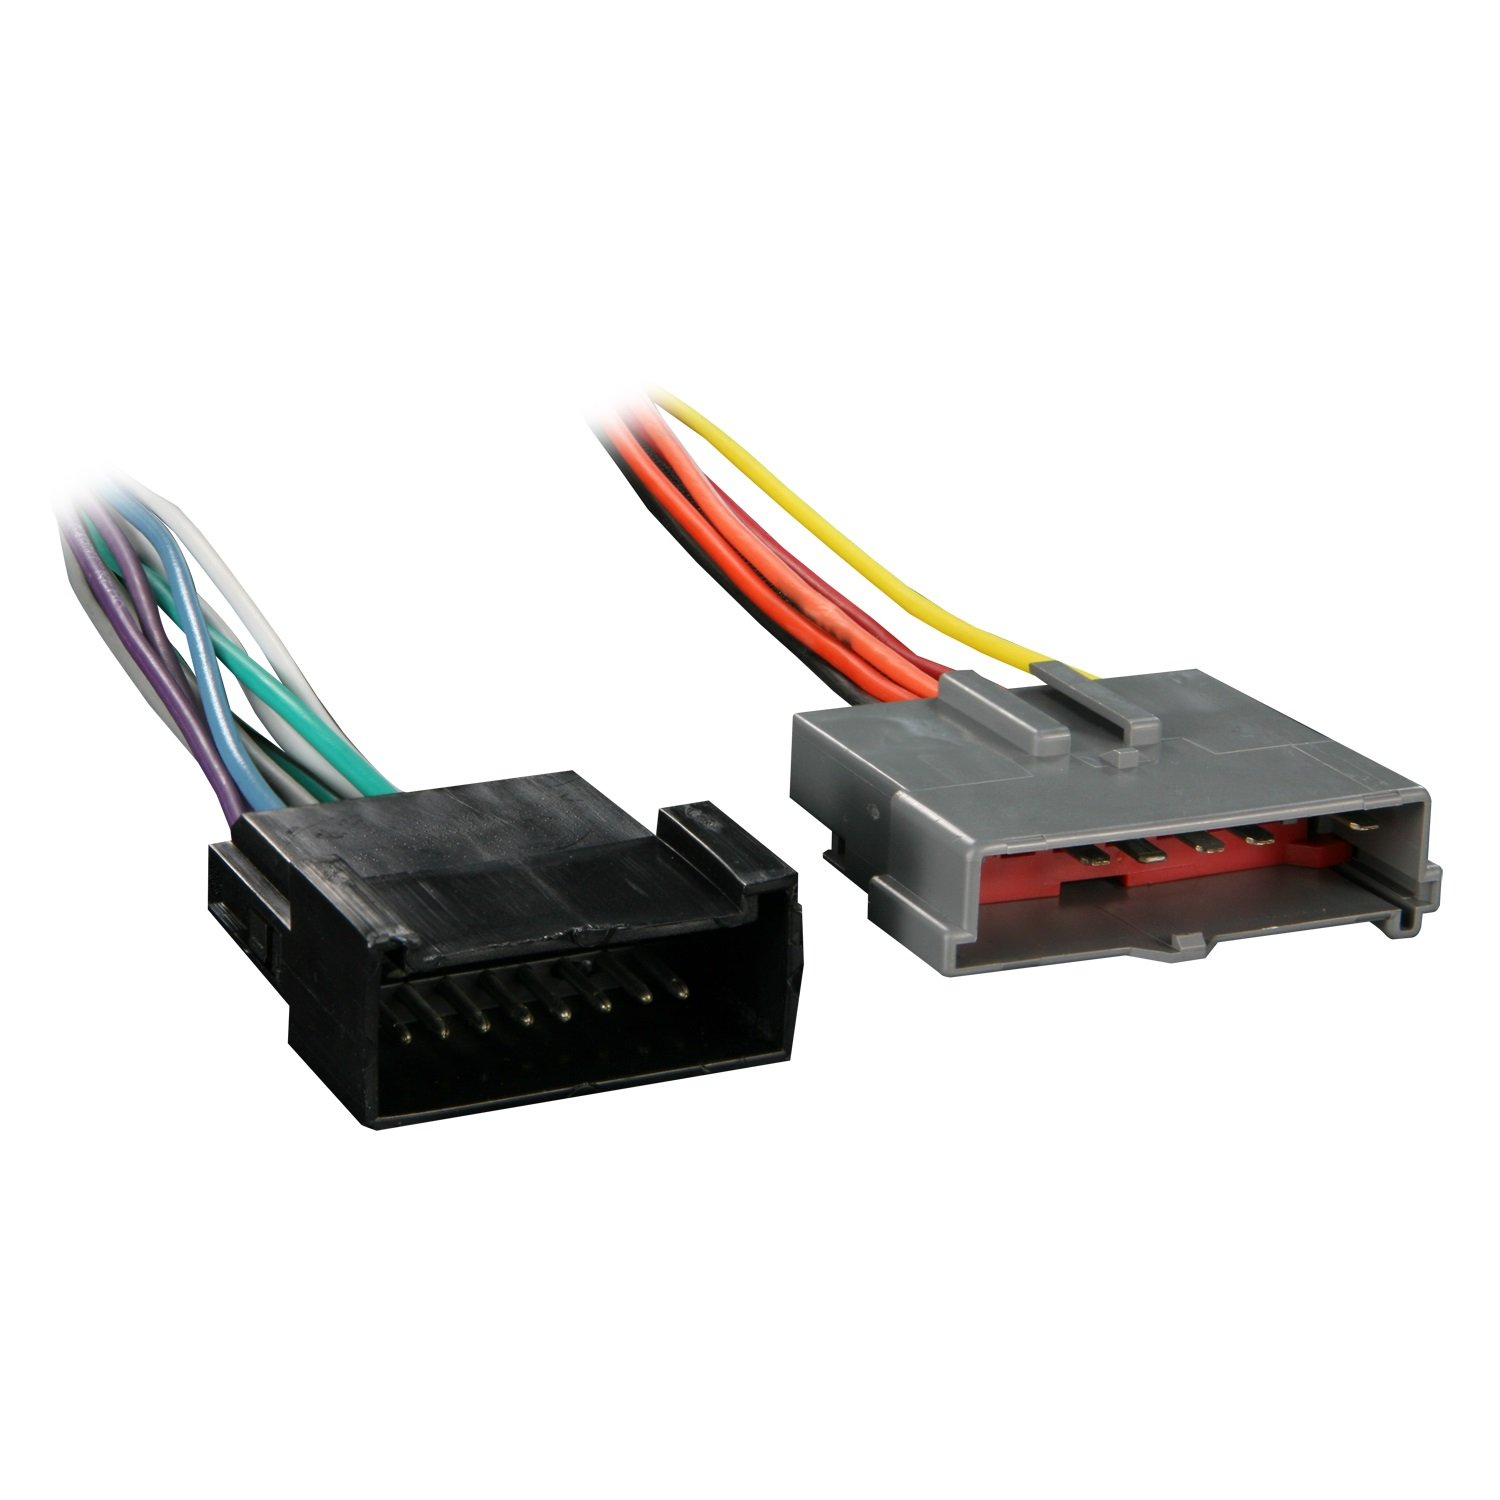 61ze7L0%2Bv8L._SL1500_ amazon com metra 70 5605 amplifier bypass harness for ford 1997 Ford Contour at readyjetset.co